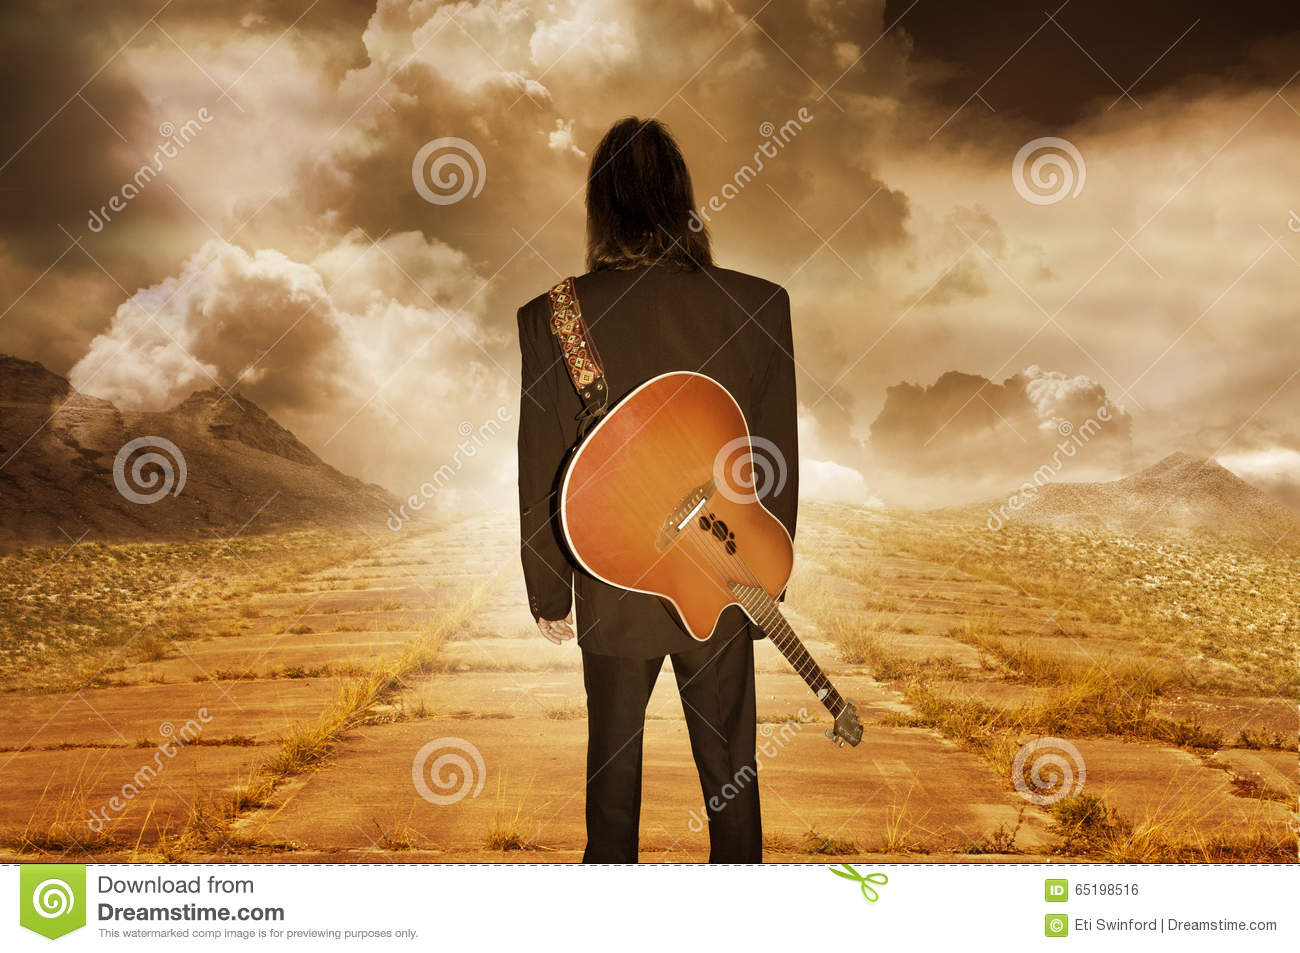 Musician looking into distance